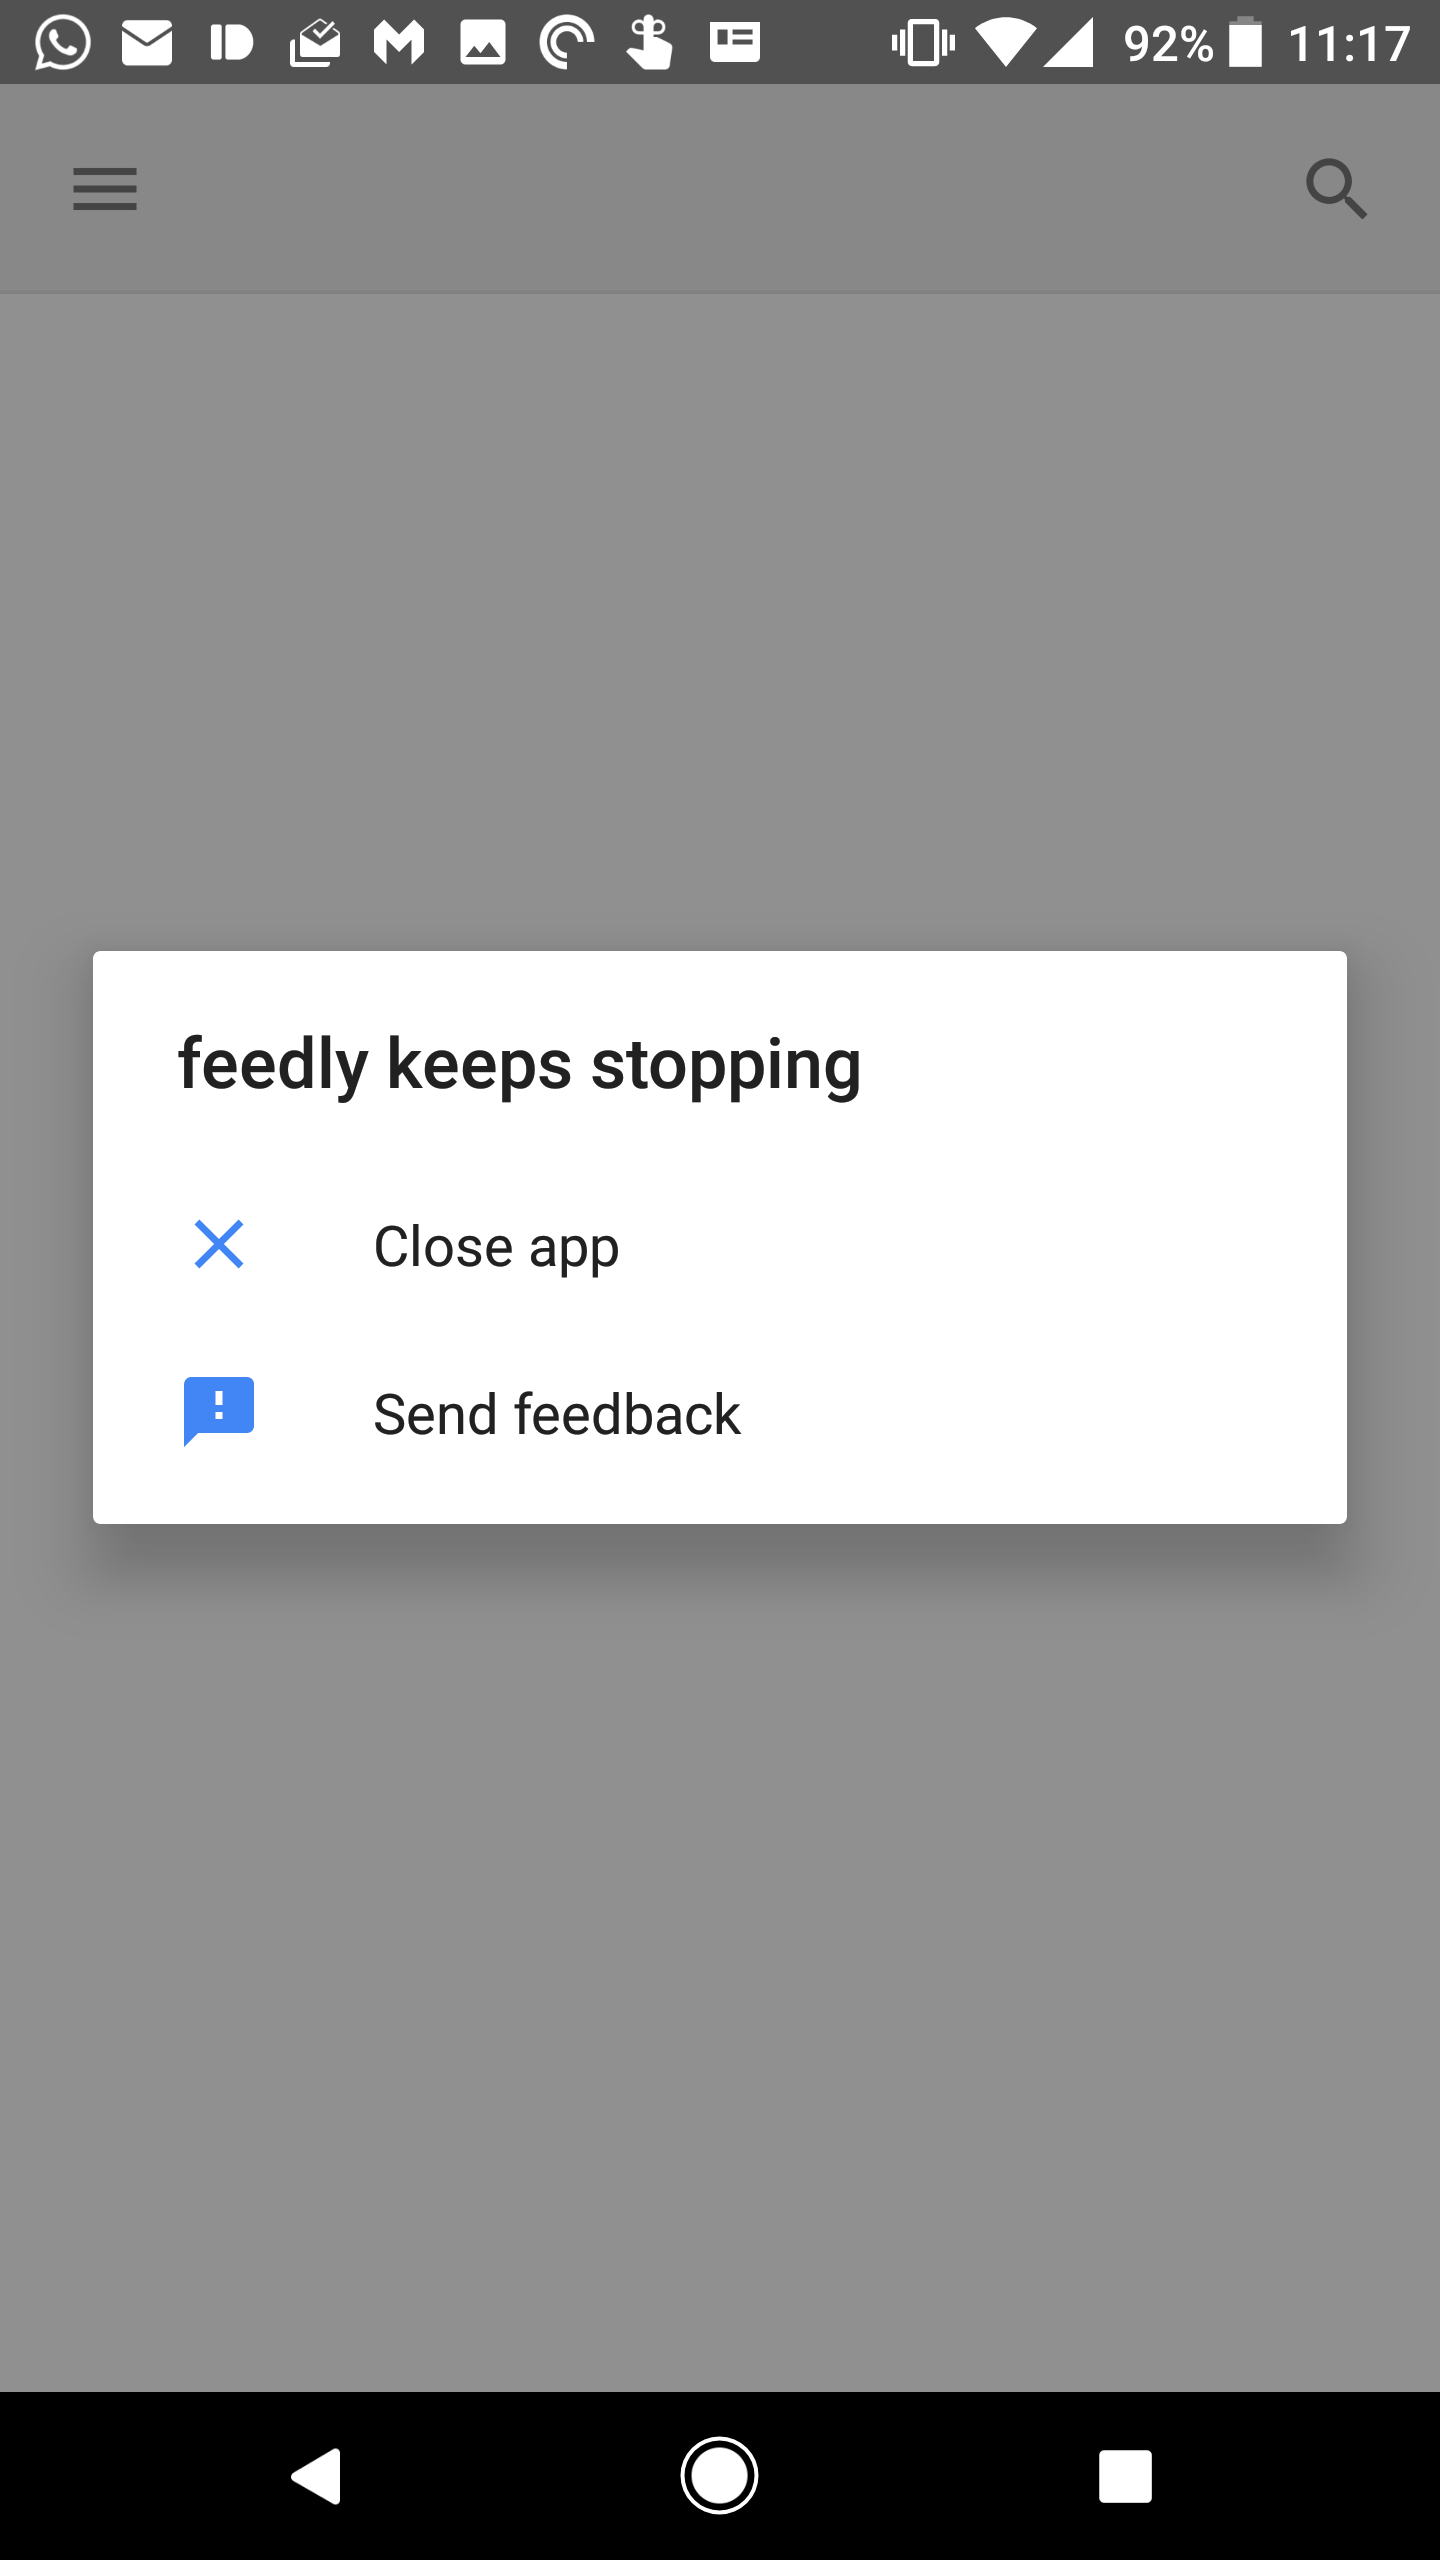 Feedly reader has a crash bug issue, but the latest update